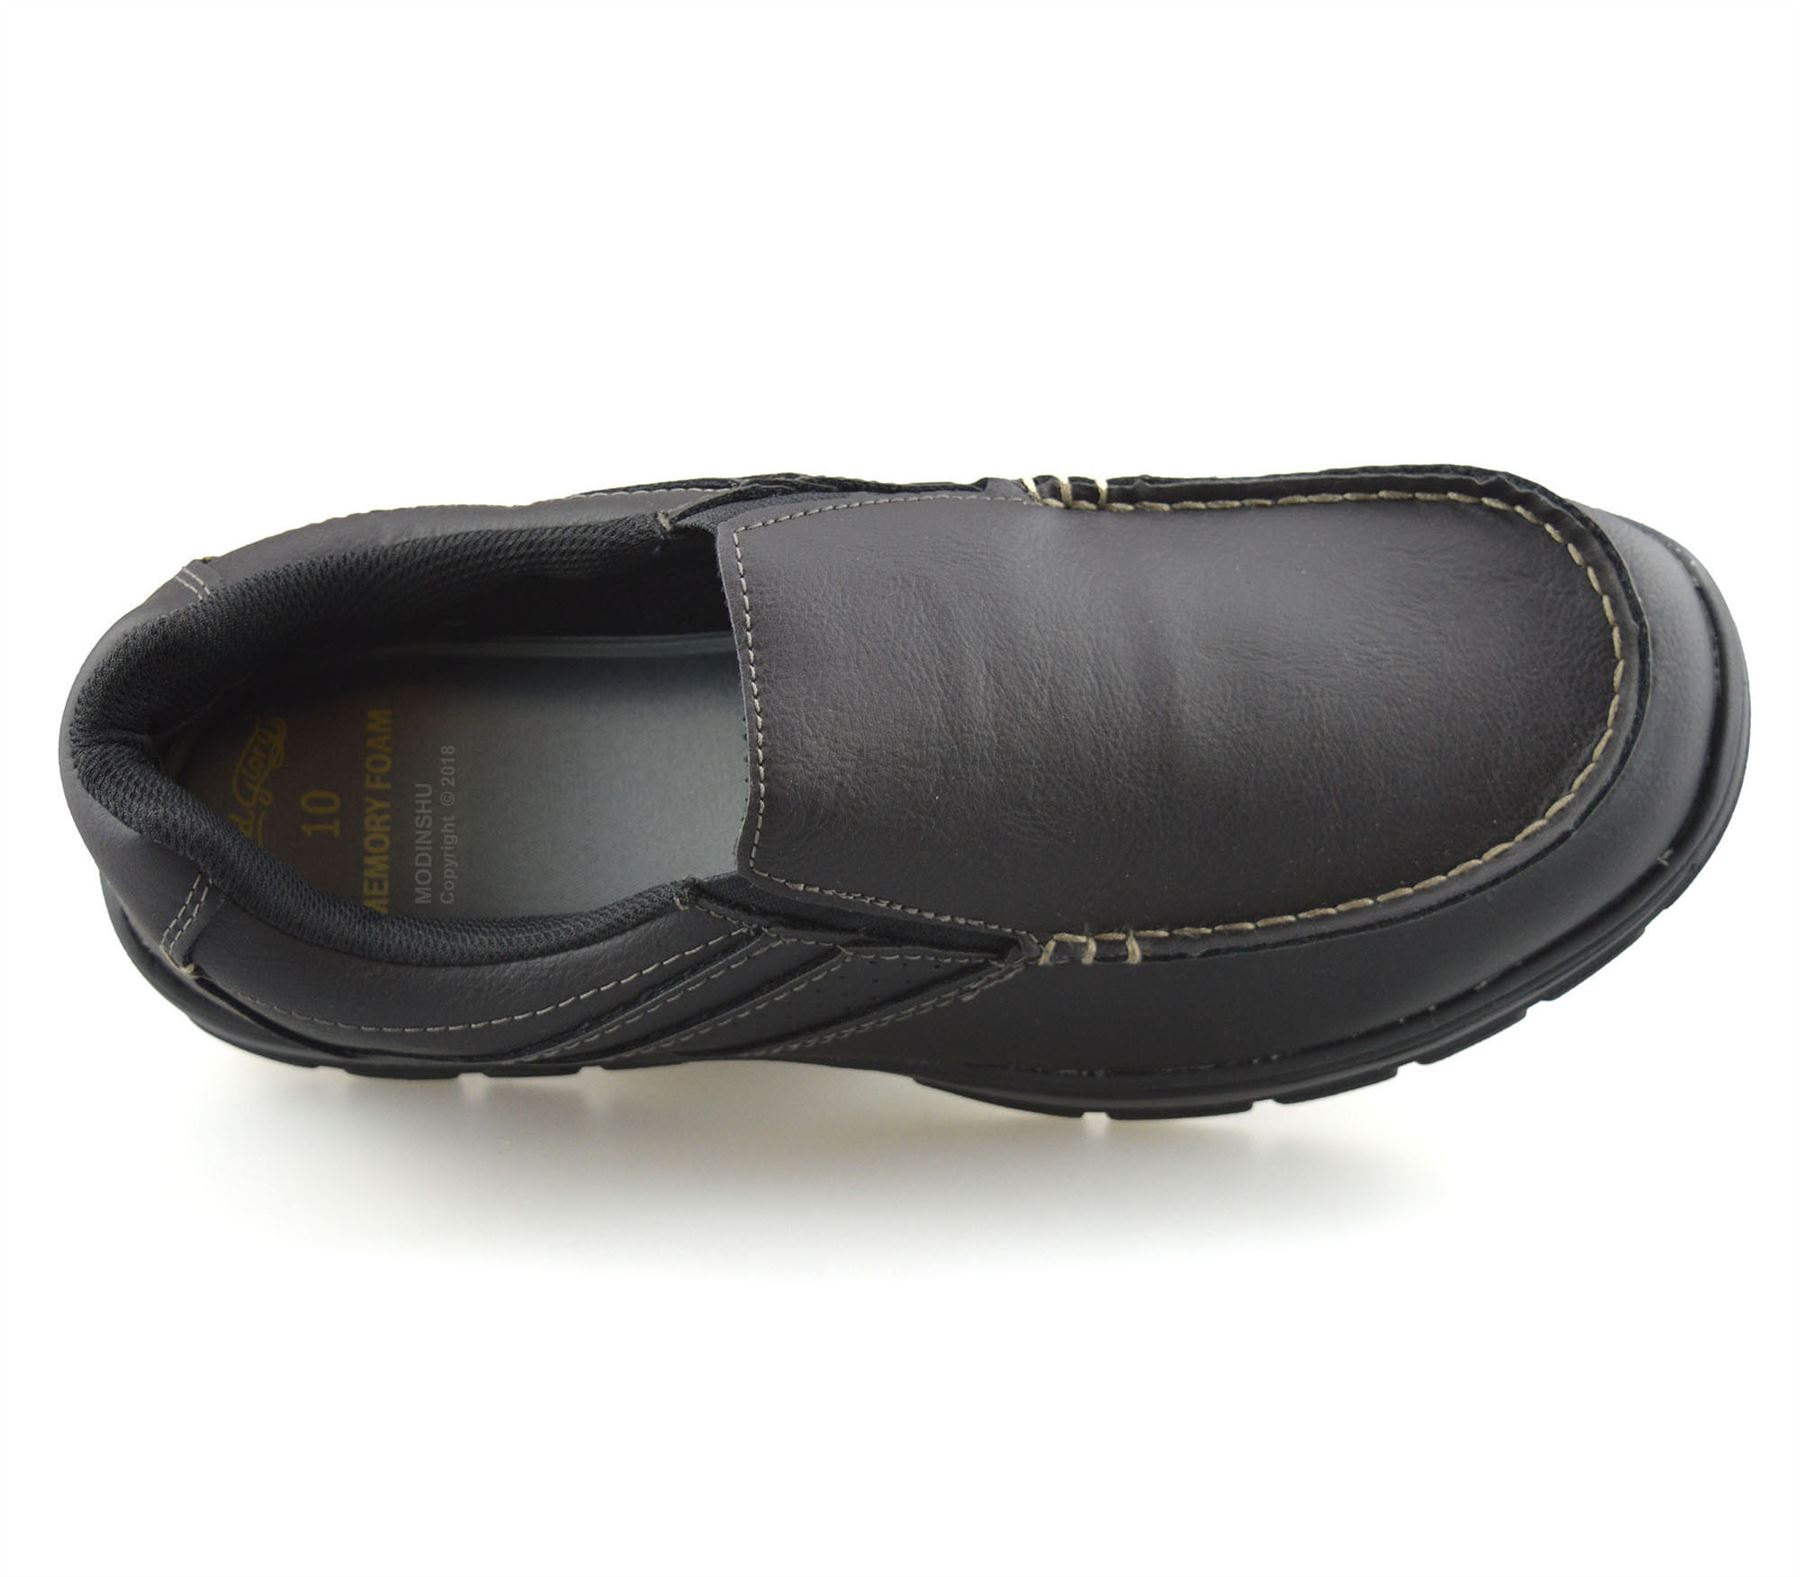 Mens-Casual-Memory-Foam-Slip-On-Walking-Moccasin-Loafers-Driving-Boat-Shoes-Size thumbnail 15